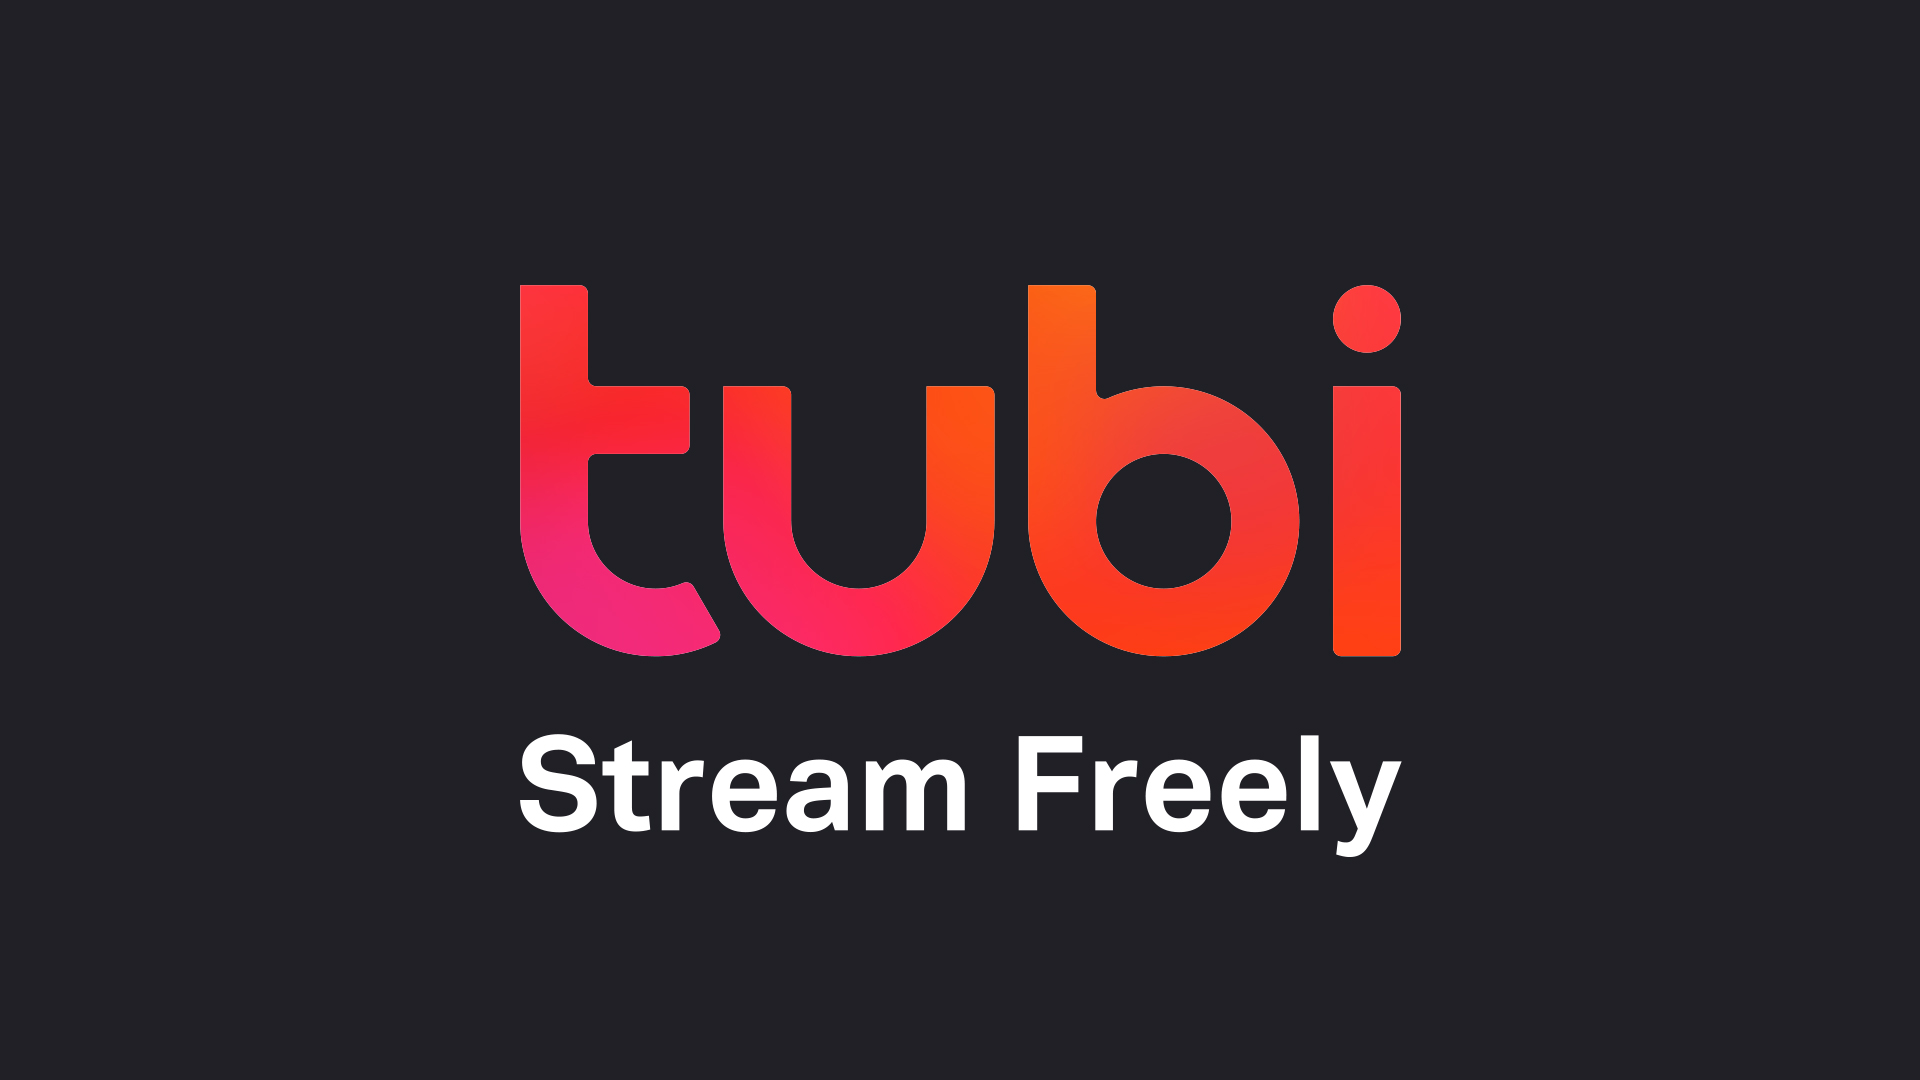 Ad-supported streaming service Tubi said it has surpassed 20 million monthly active users after activity in May reached 94 million hours of content viewing and revenue in the month set a company record.